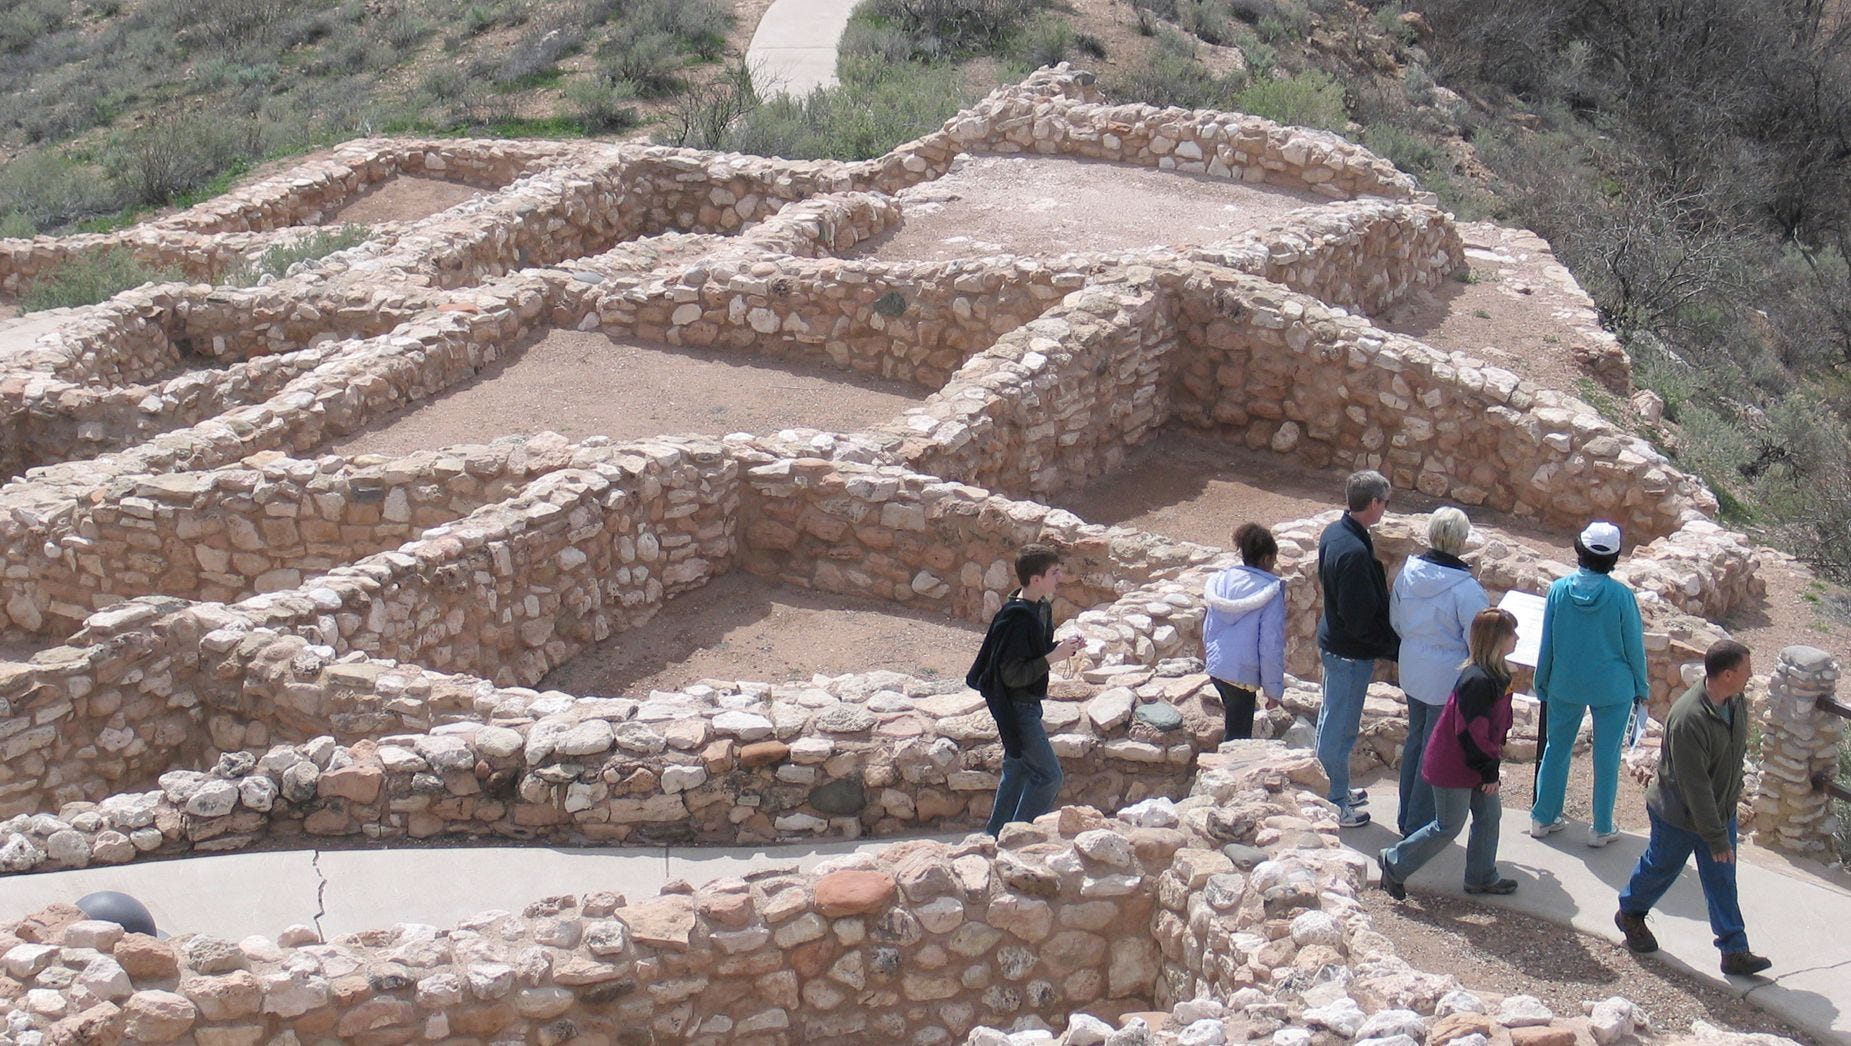 The winding ruins of Tuzigoot